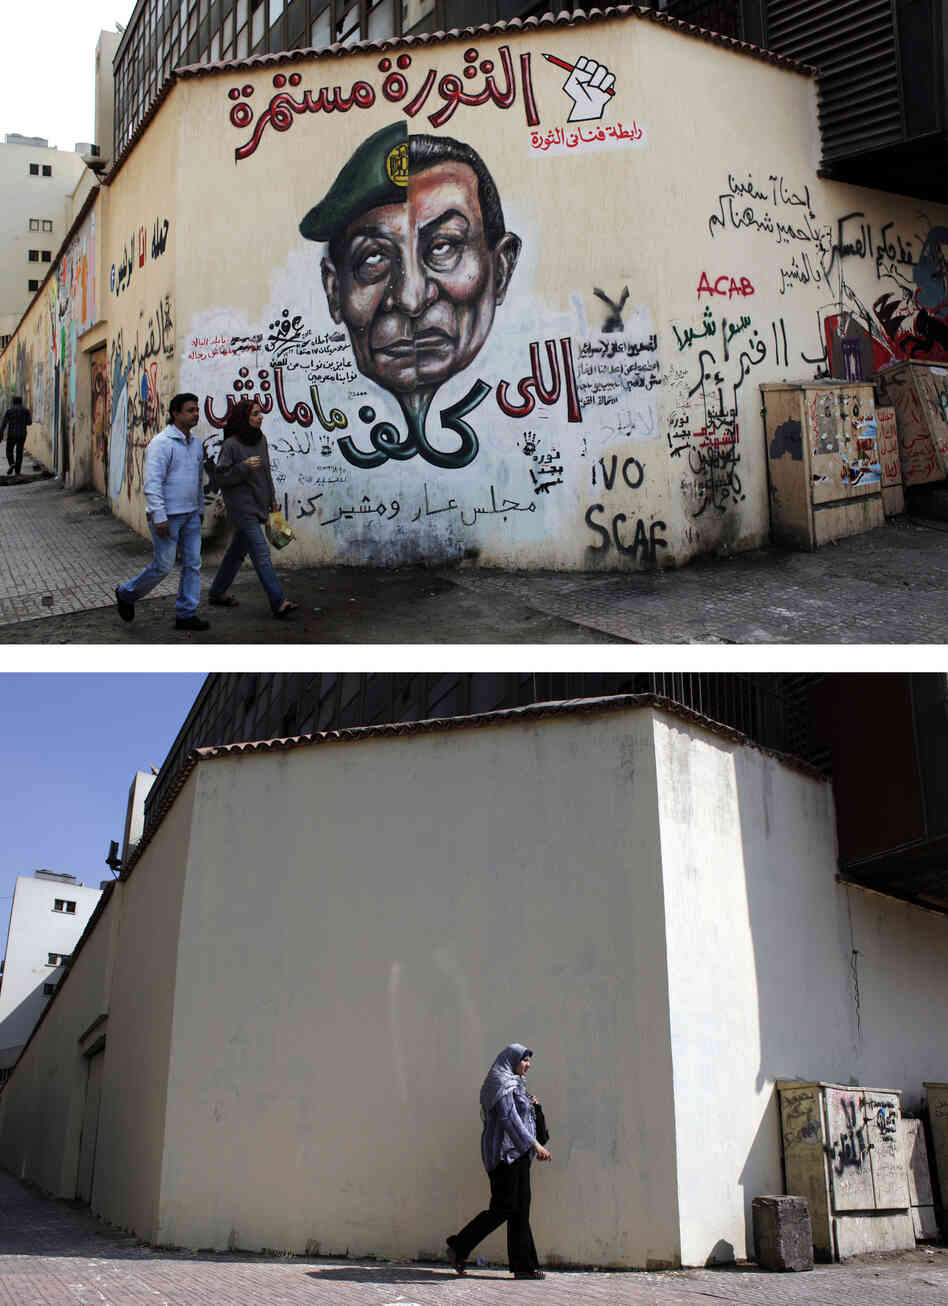 A mural (pictured above in March) was whitewashed (below) during a cleanup campaign in Cairo's Tahrir Square in September. Graffiti artists repainted the wall soon after.